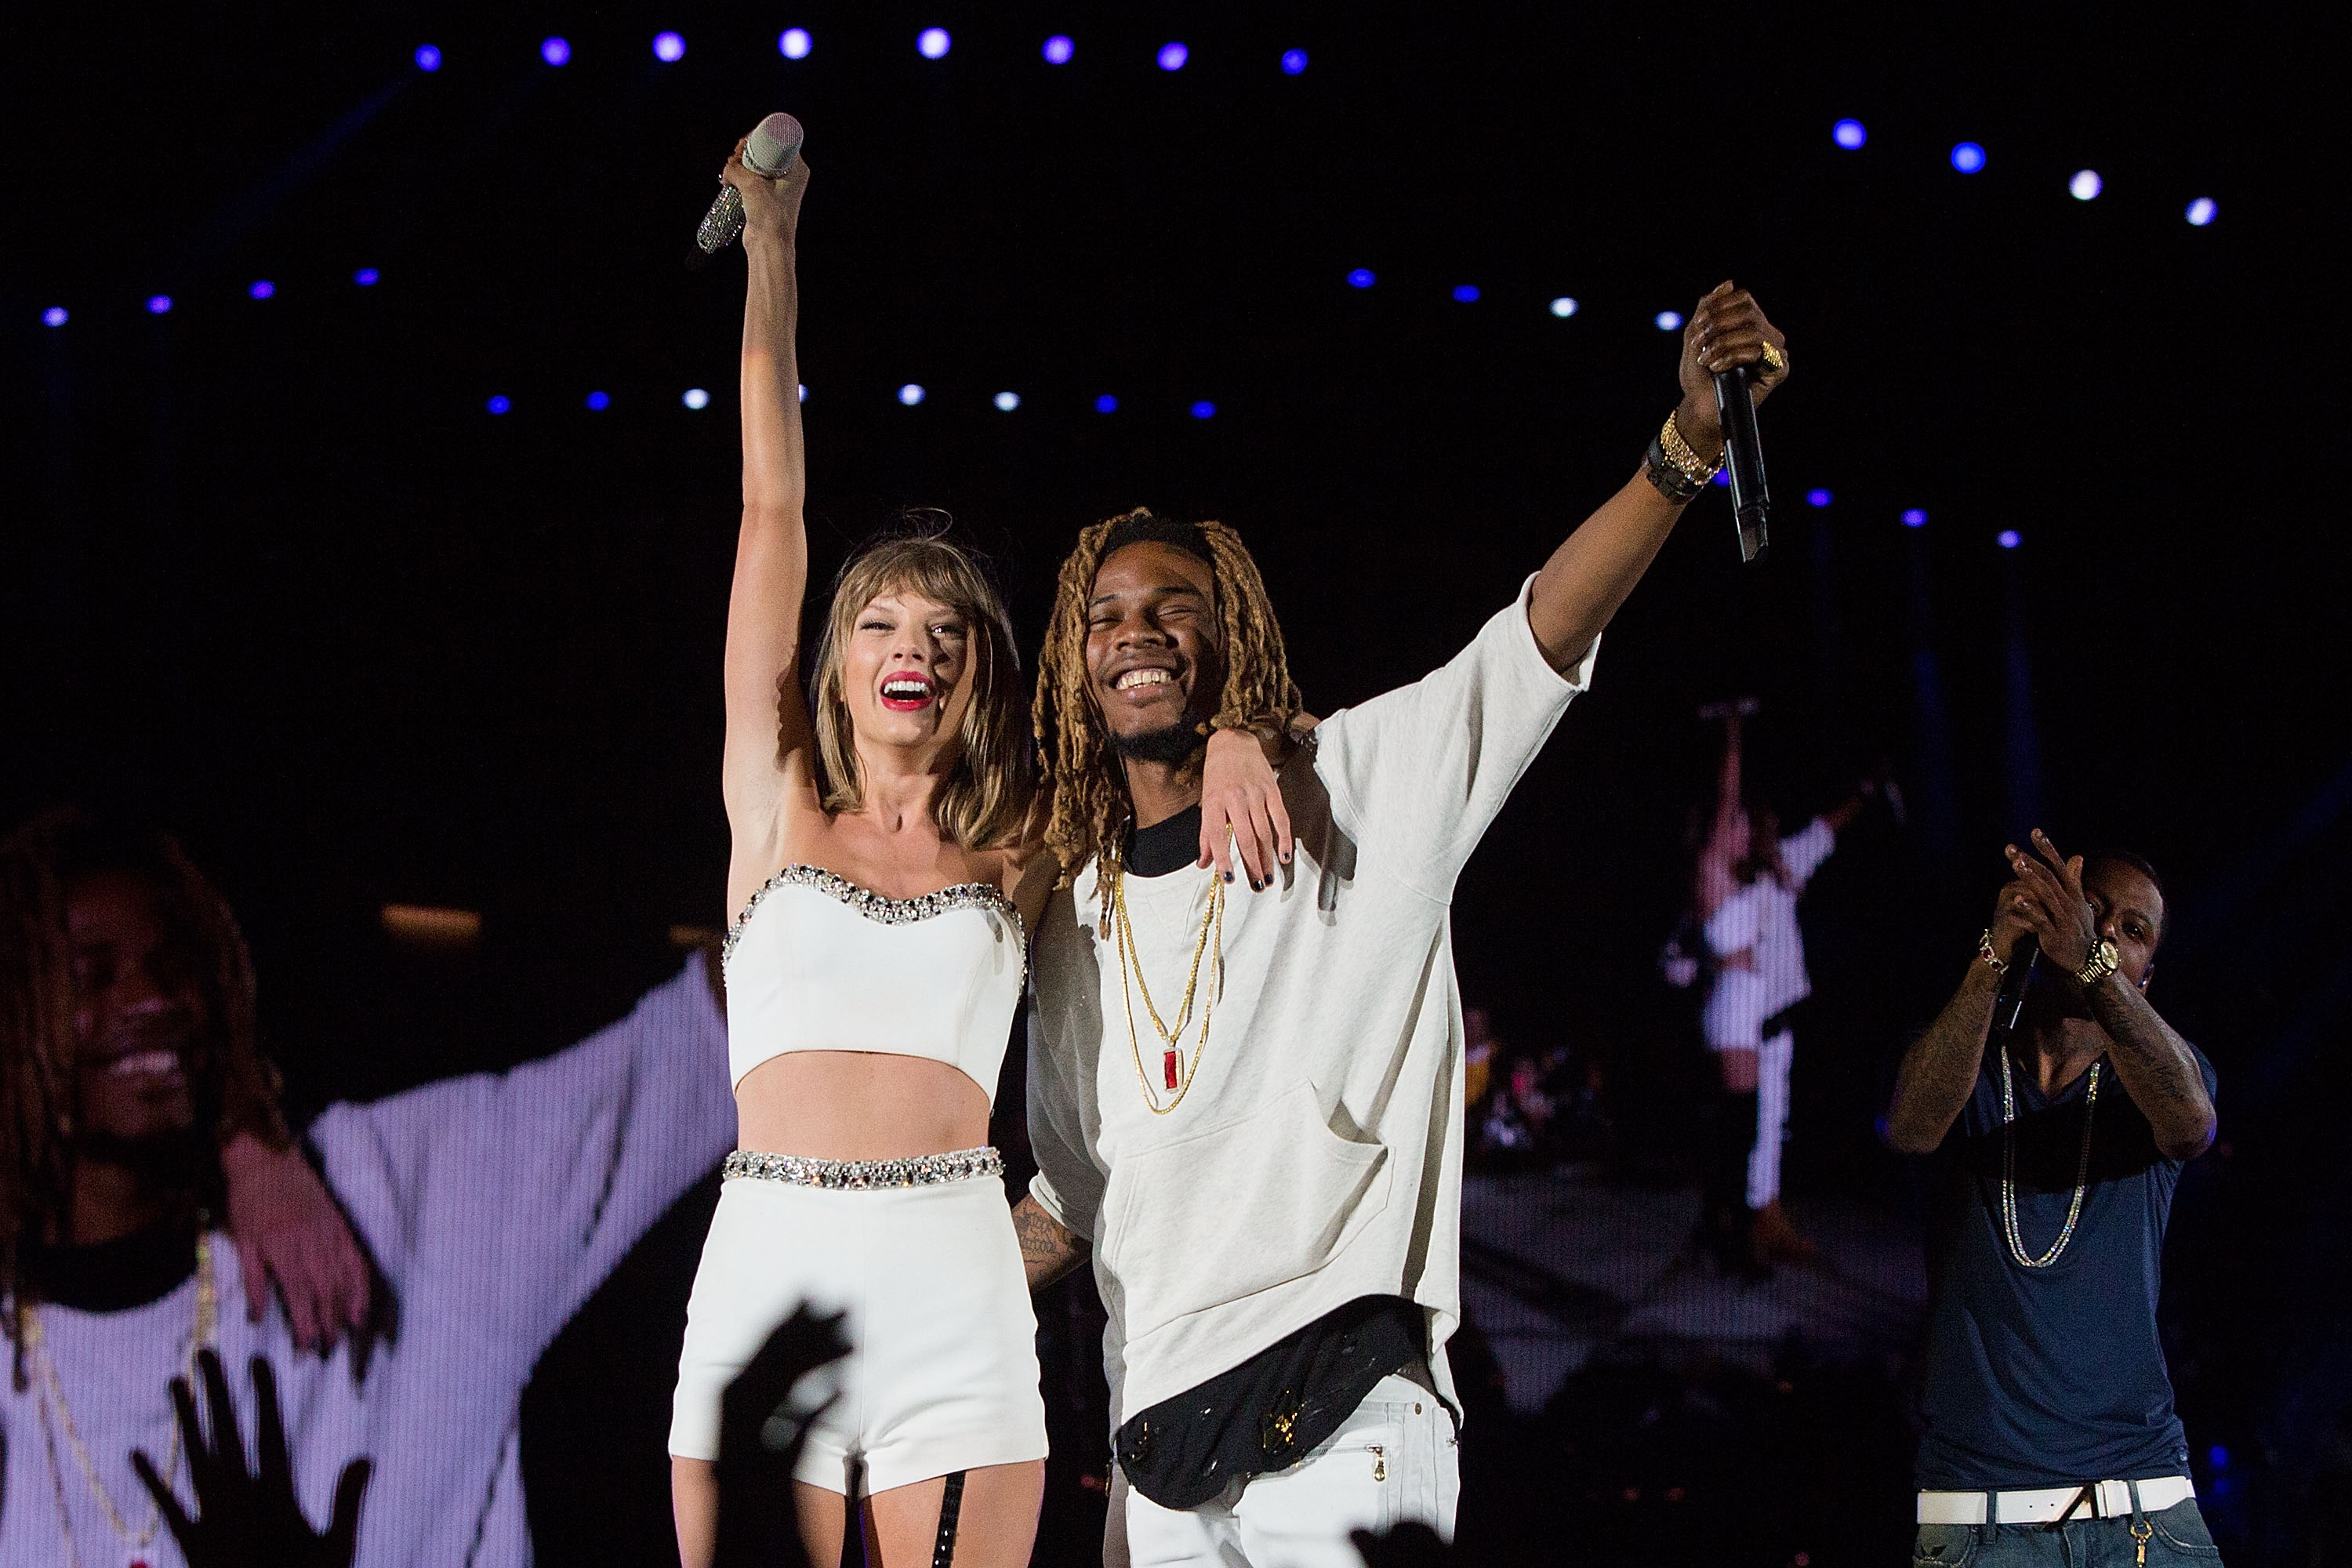 Taylor Swift and Fetty Wap at CenturyLink Field on August 8, 2015 in Seattle, Washington.